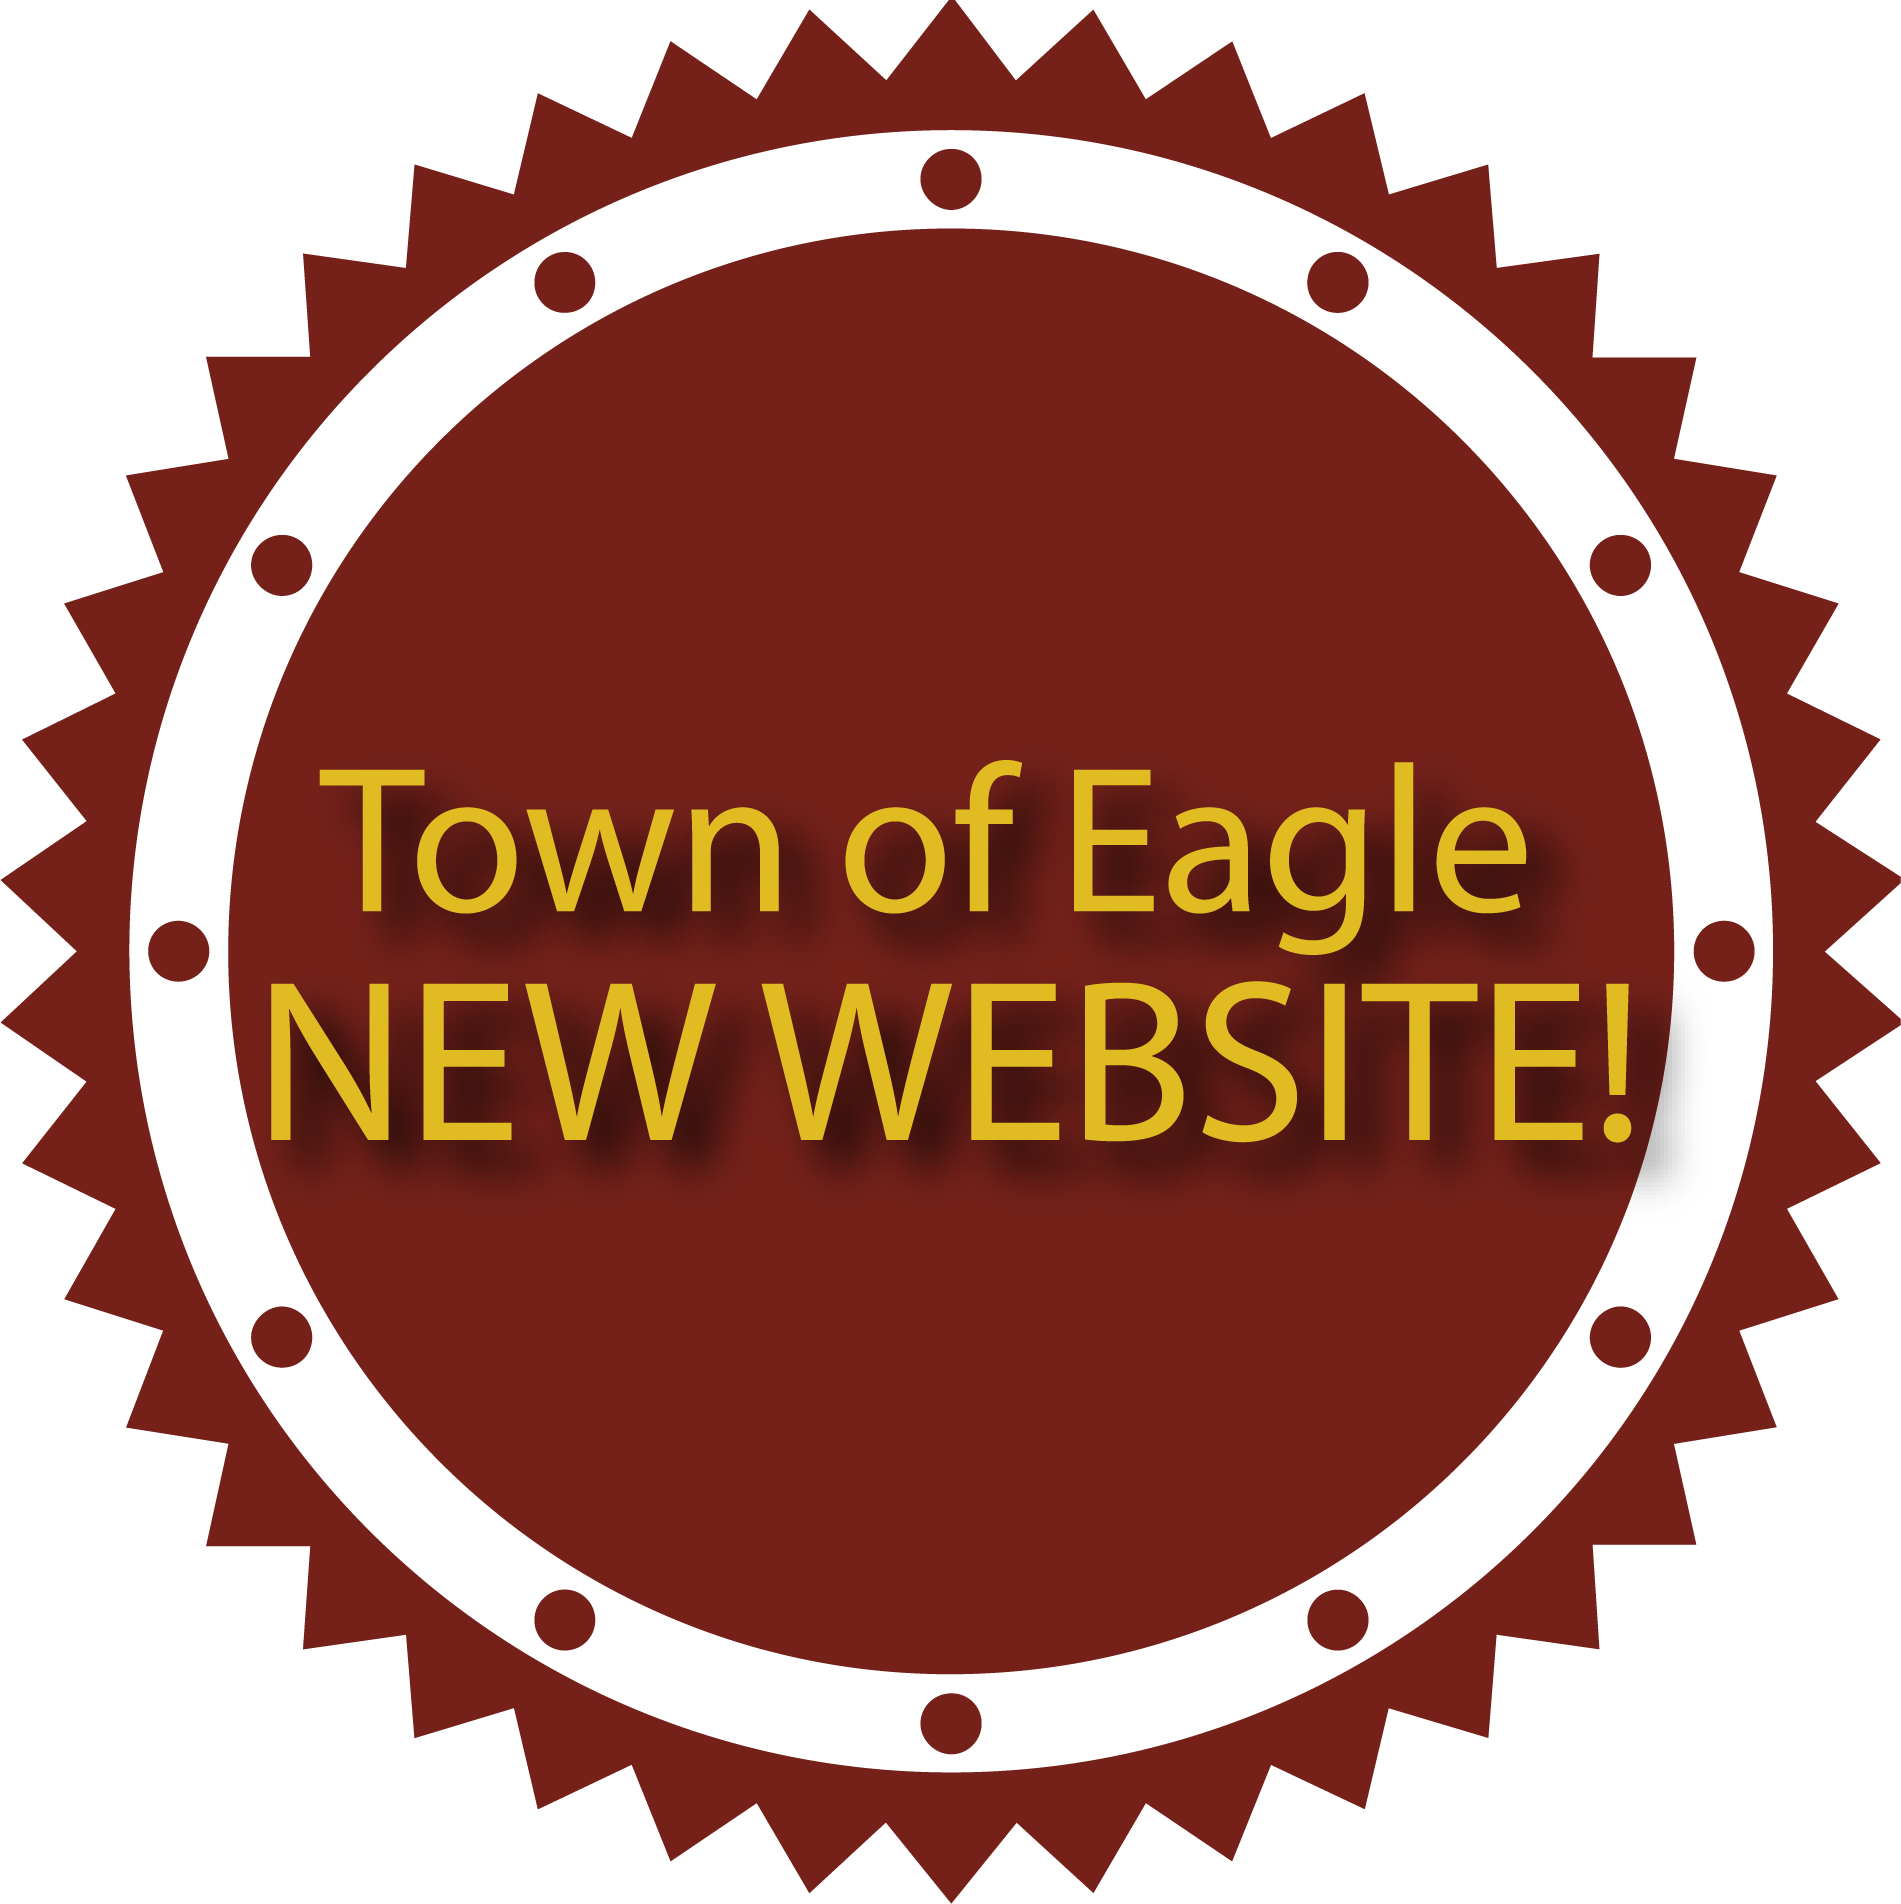 Town of Eagle— NEW WEBSITE!